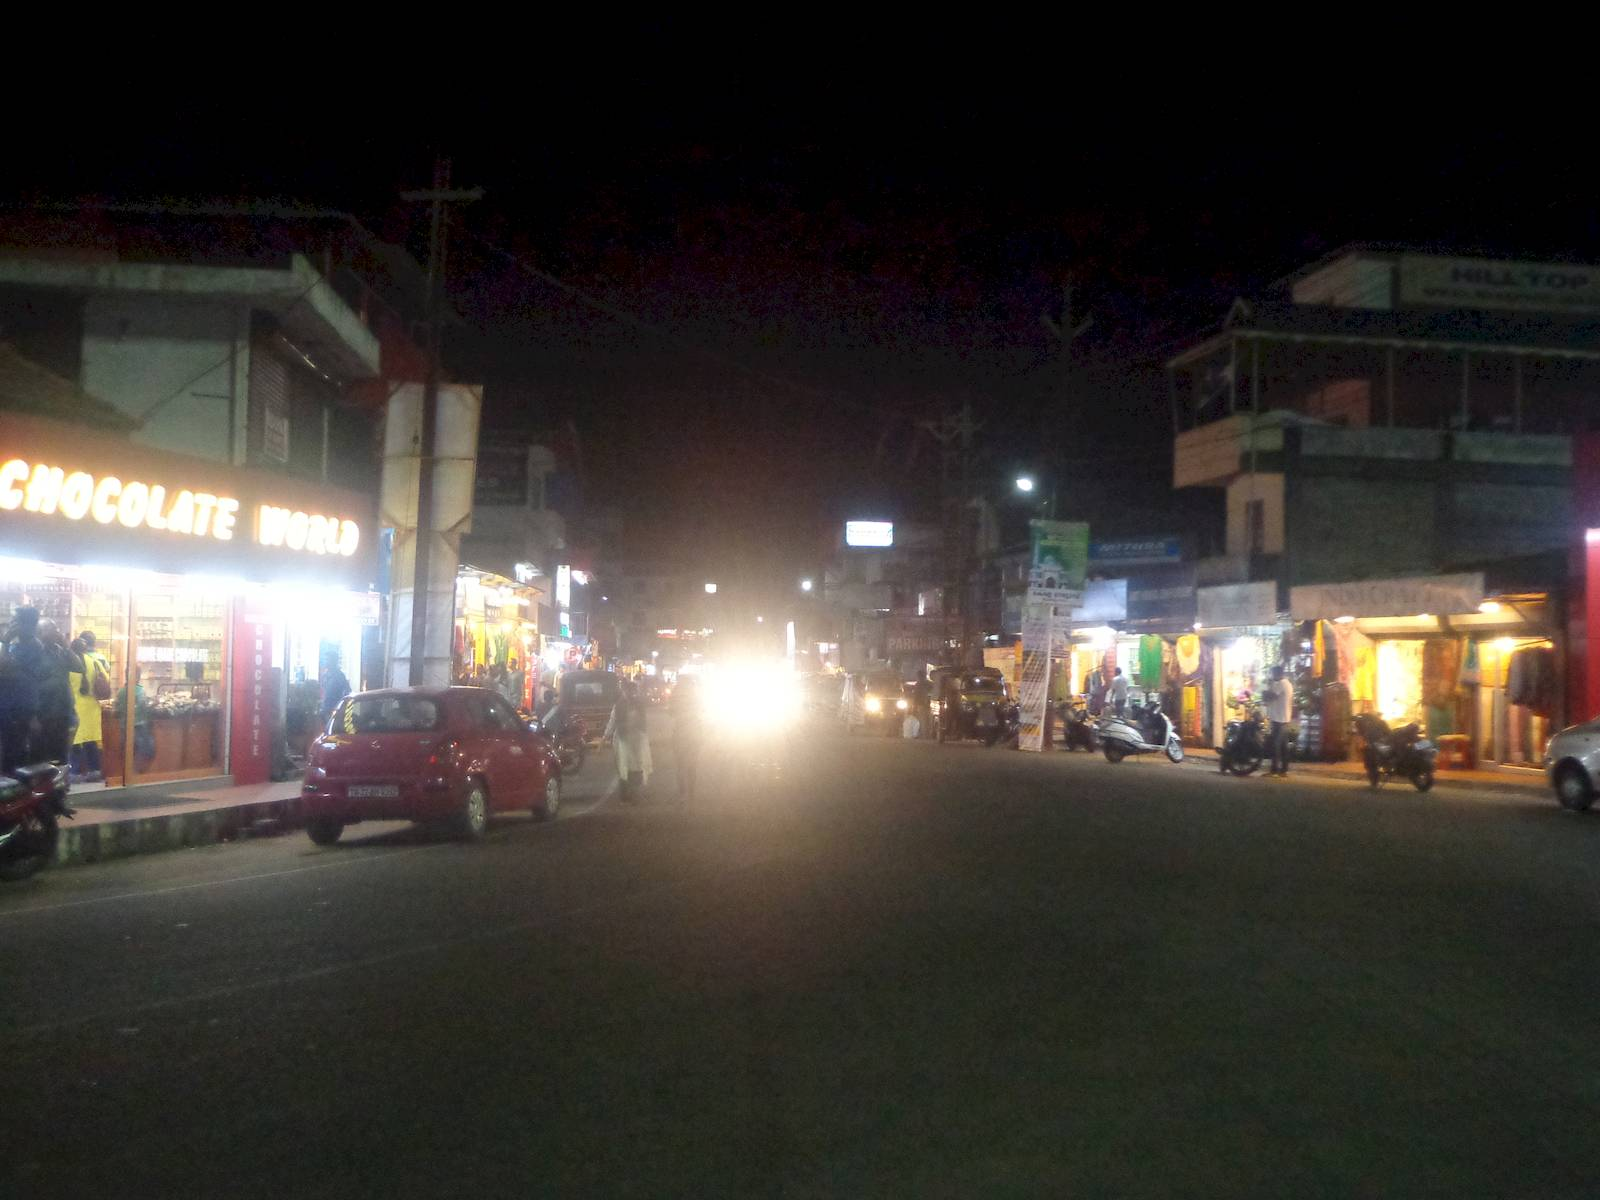 Kumally bus stop at night.